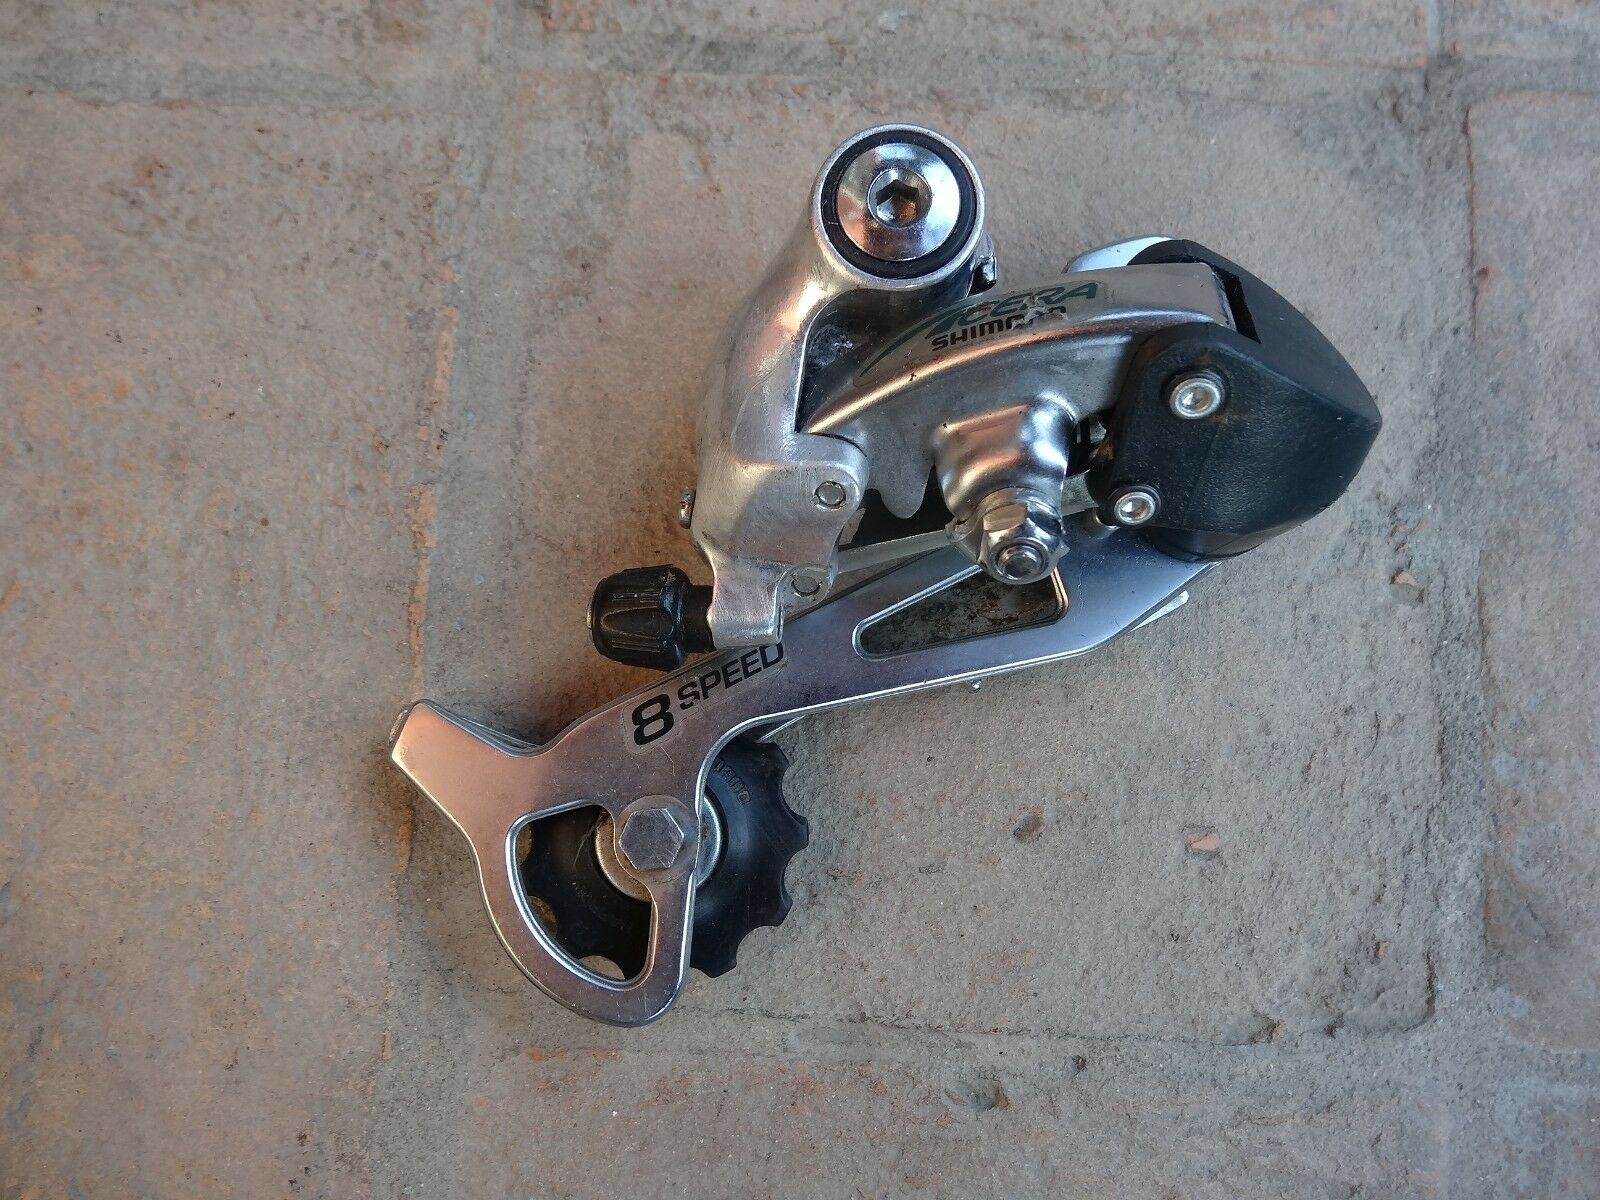 Vintage Shimano Acera 7 8 speed  rear derailleur  free delivery and returns